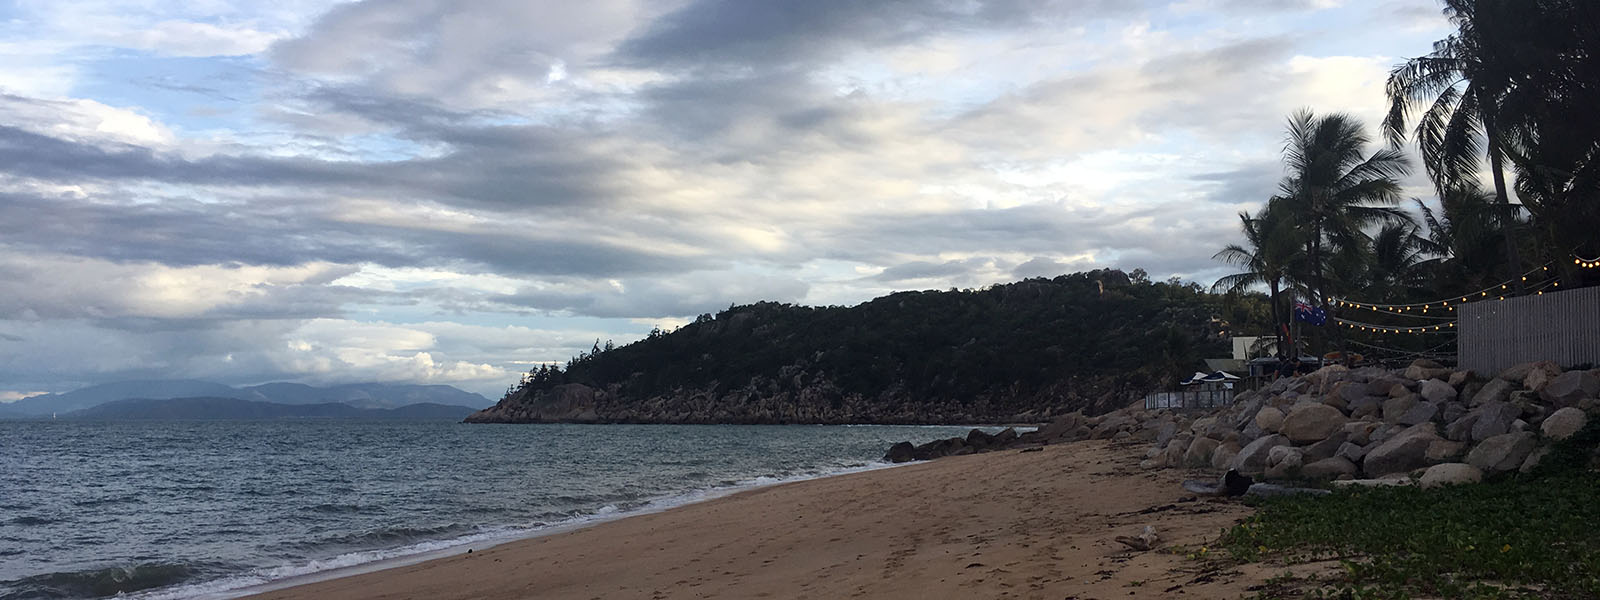 Beach view in Magnetic Island, Queensland, Australia